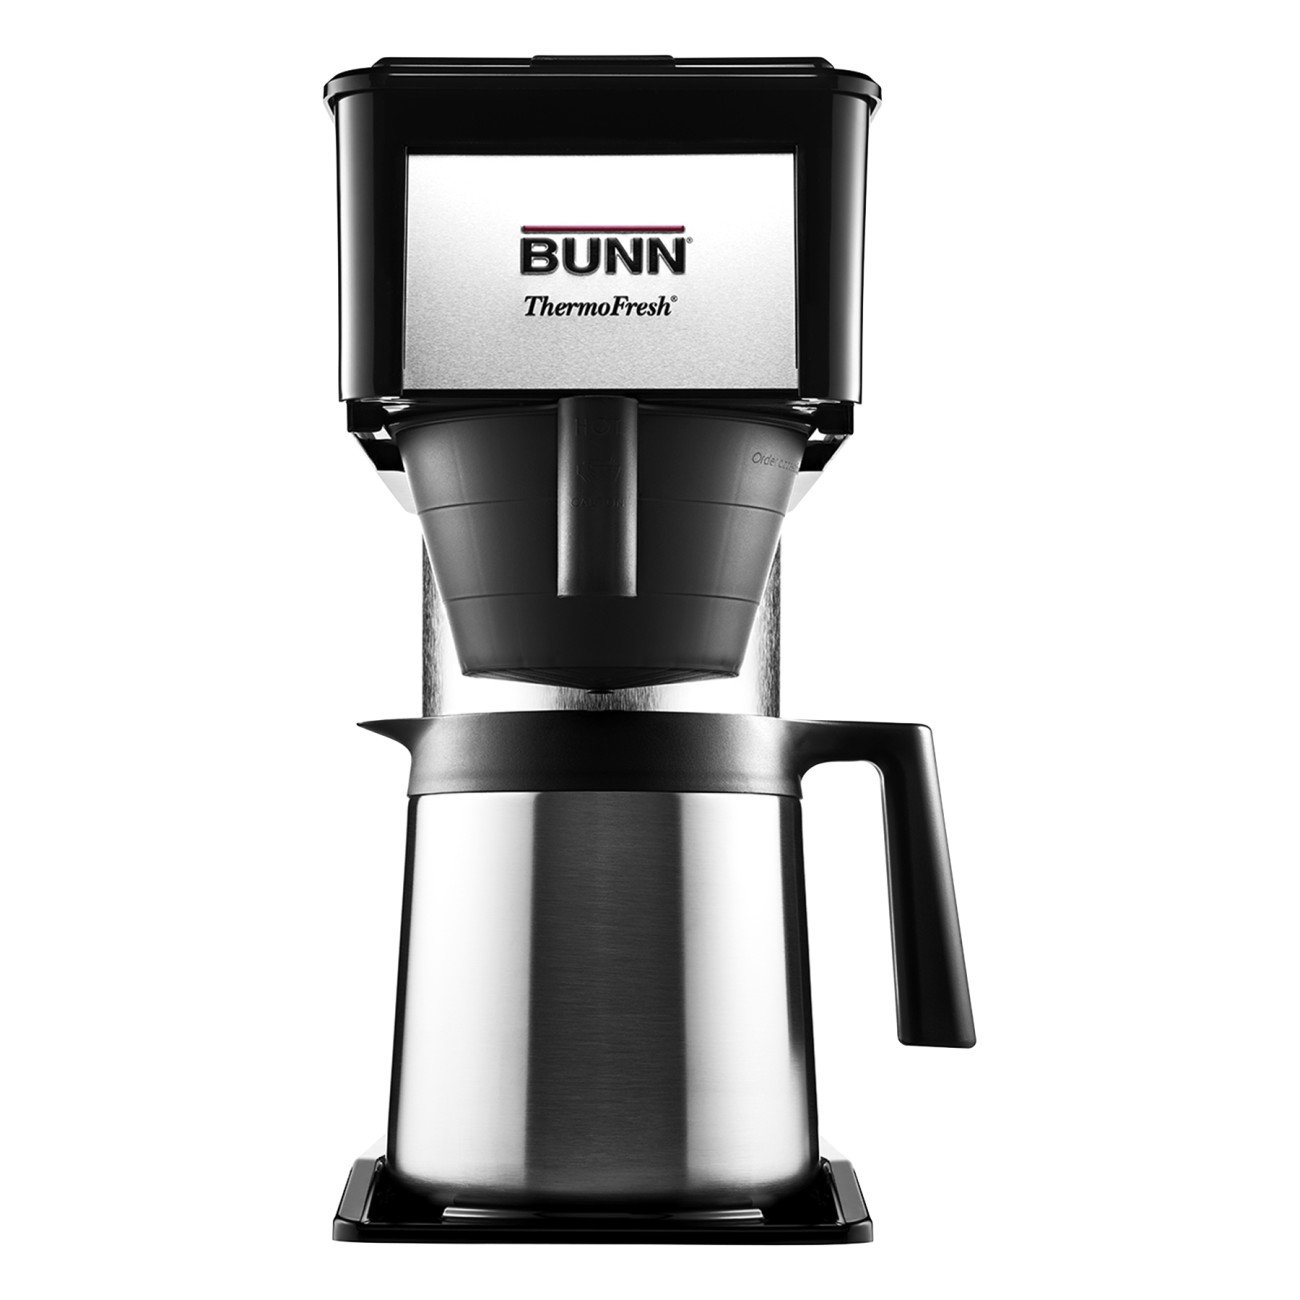 BUNN BT Velocity Brew 10-Cup Thermal Carafe Home Coffee Brewer, Black by BUNN